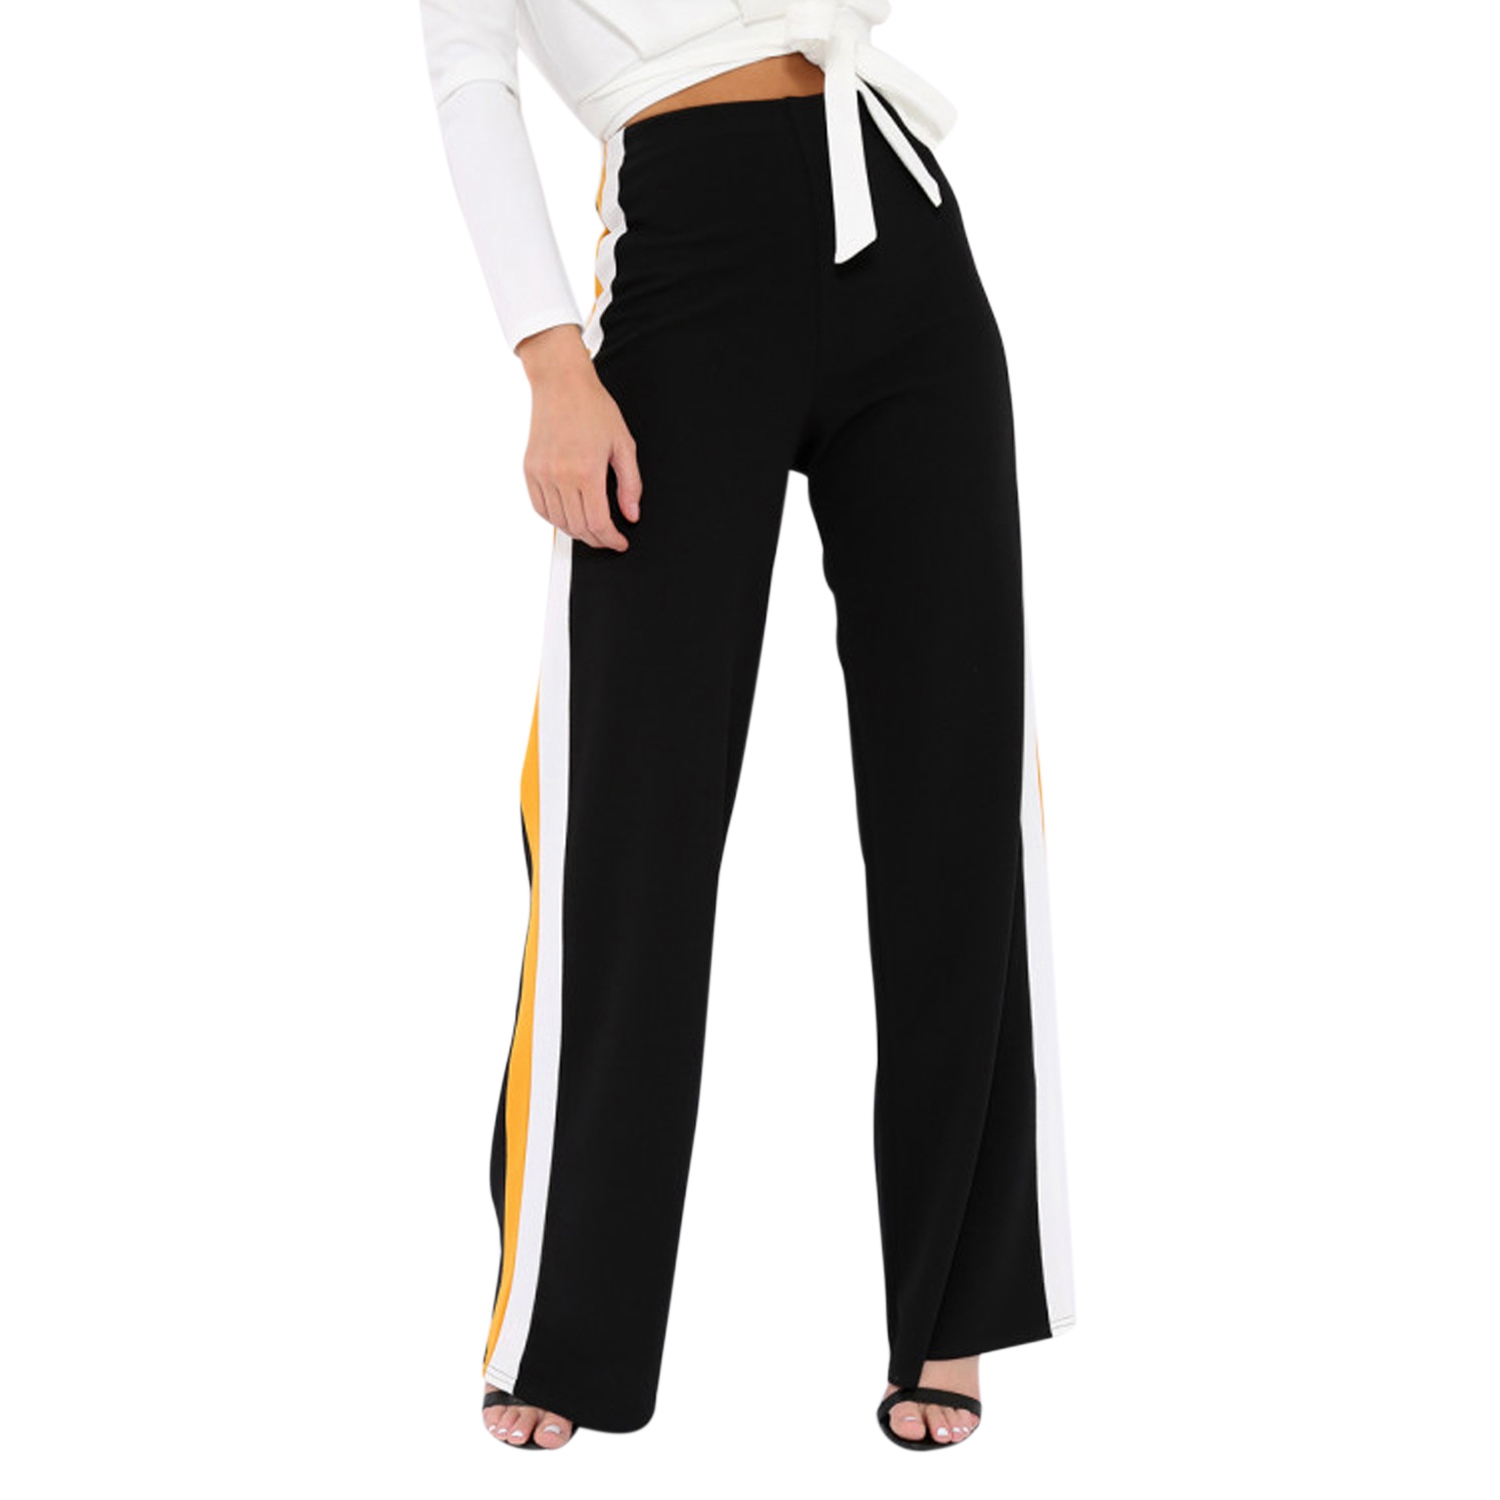 Women Fashion High Waist Side Stripe Patchwork Trousers Ladies Casual Contrast Colored Splicing Long Wide Leg Pants Stretch Le